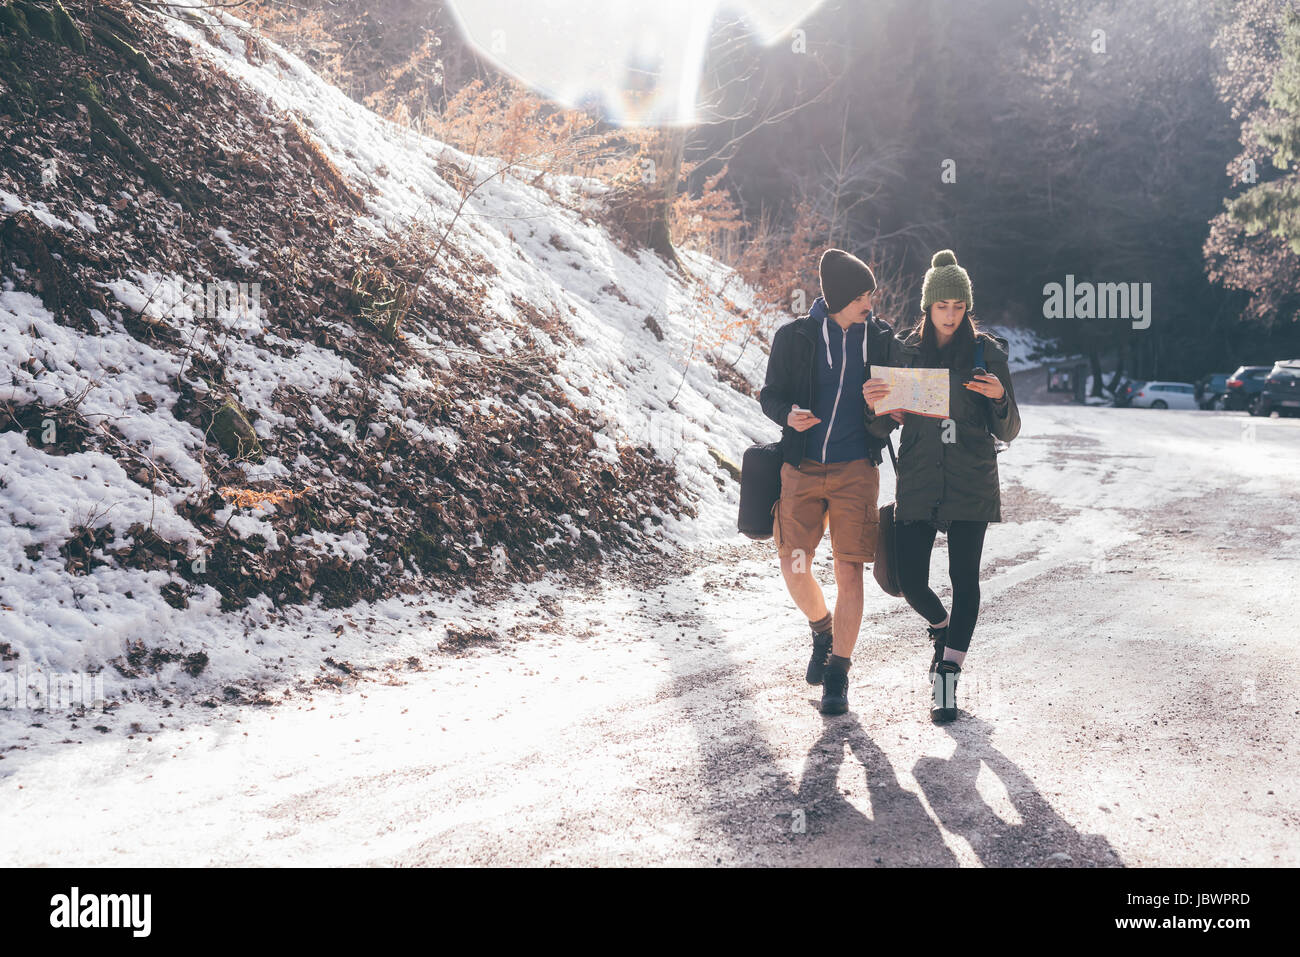 Hiking couple looking at compass hiking along rural road, Monte San Primo, Italy - Stock Image